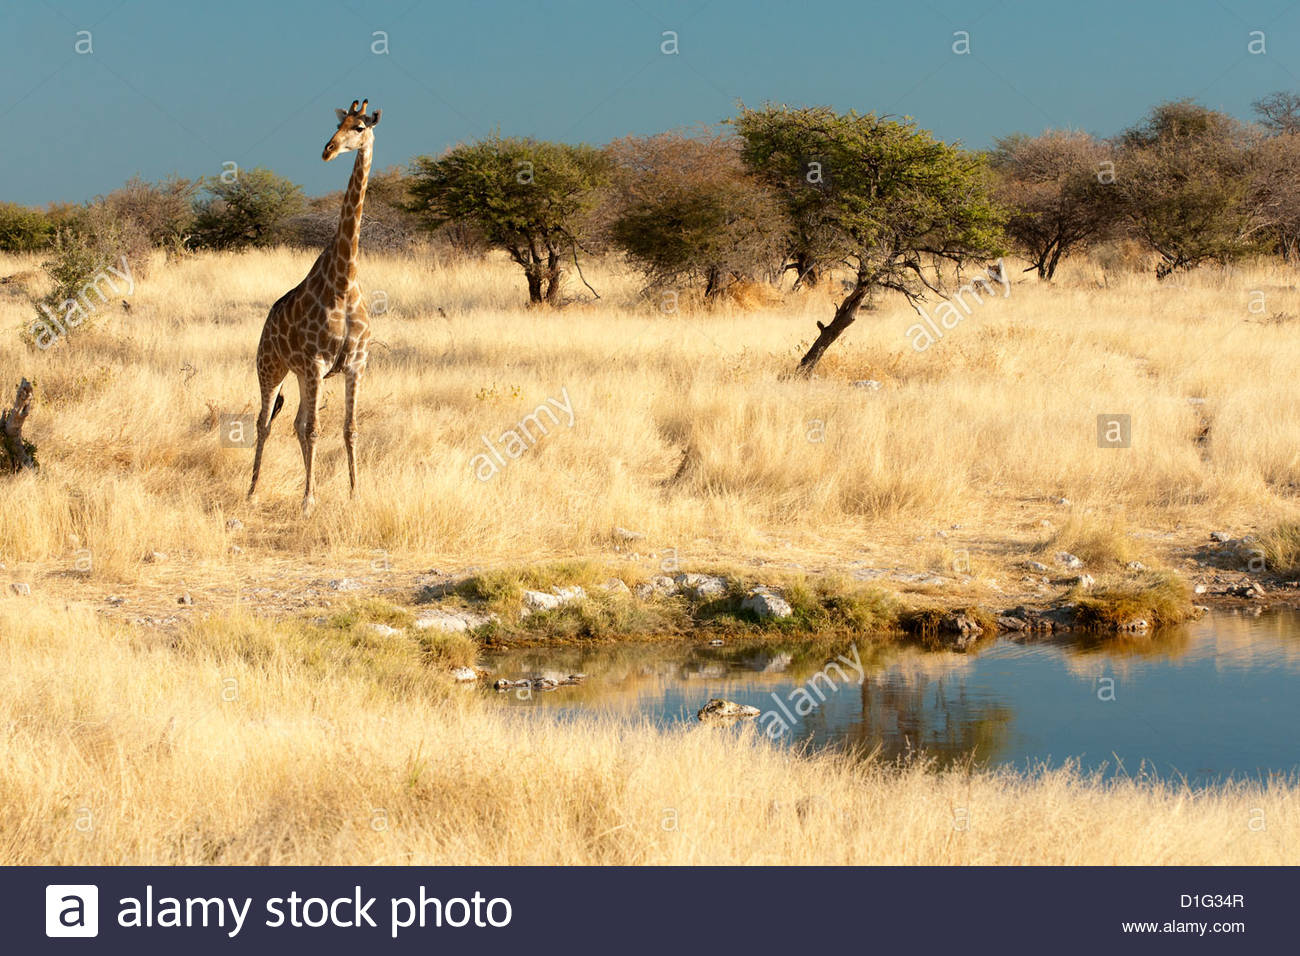 Giraffe (Giraffa camelopardis) at water hole, world's tallest animal, Etosha National Park, Namibia, Africa - Stock Image